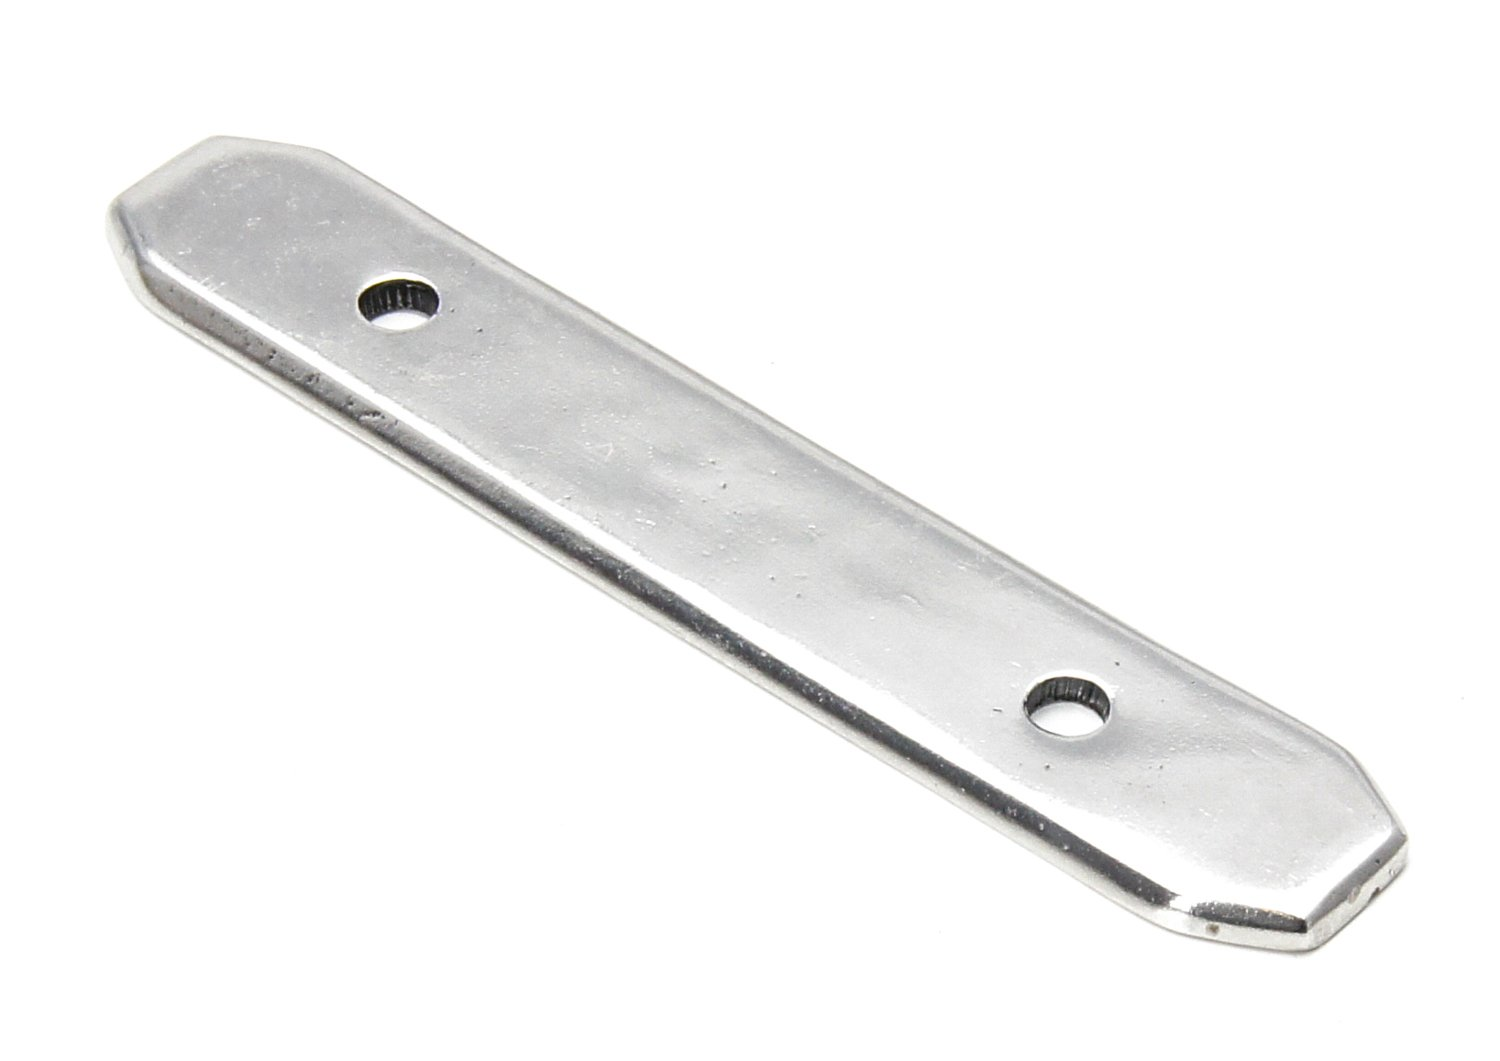 Needa Parts 863500 5//32 x 1.5 Cotter Pin, Pack of 100